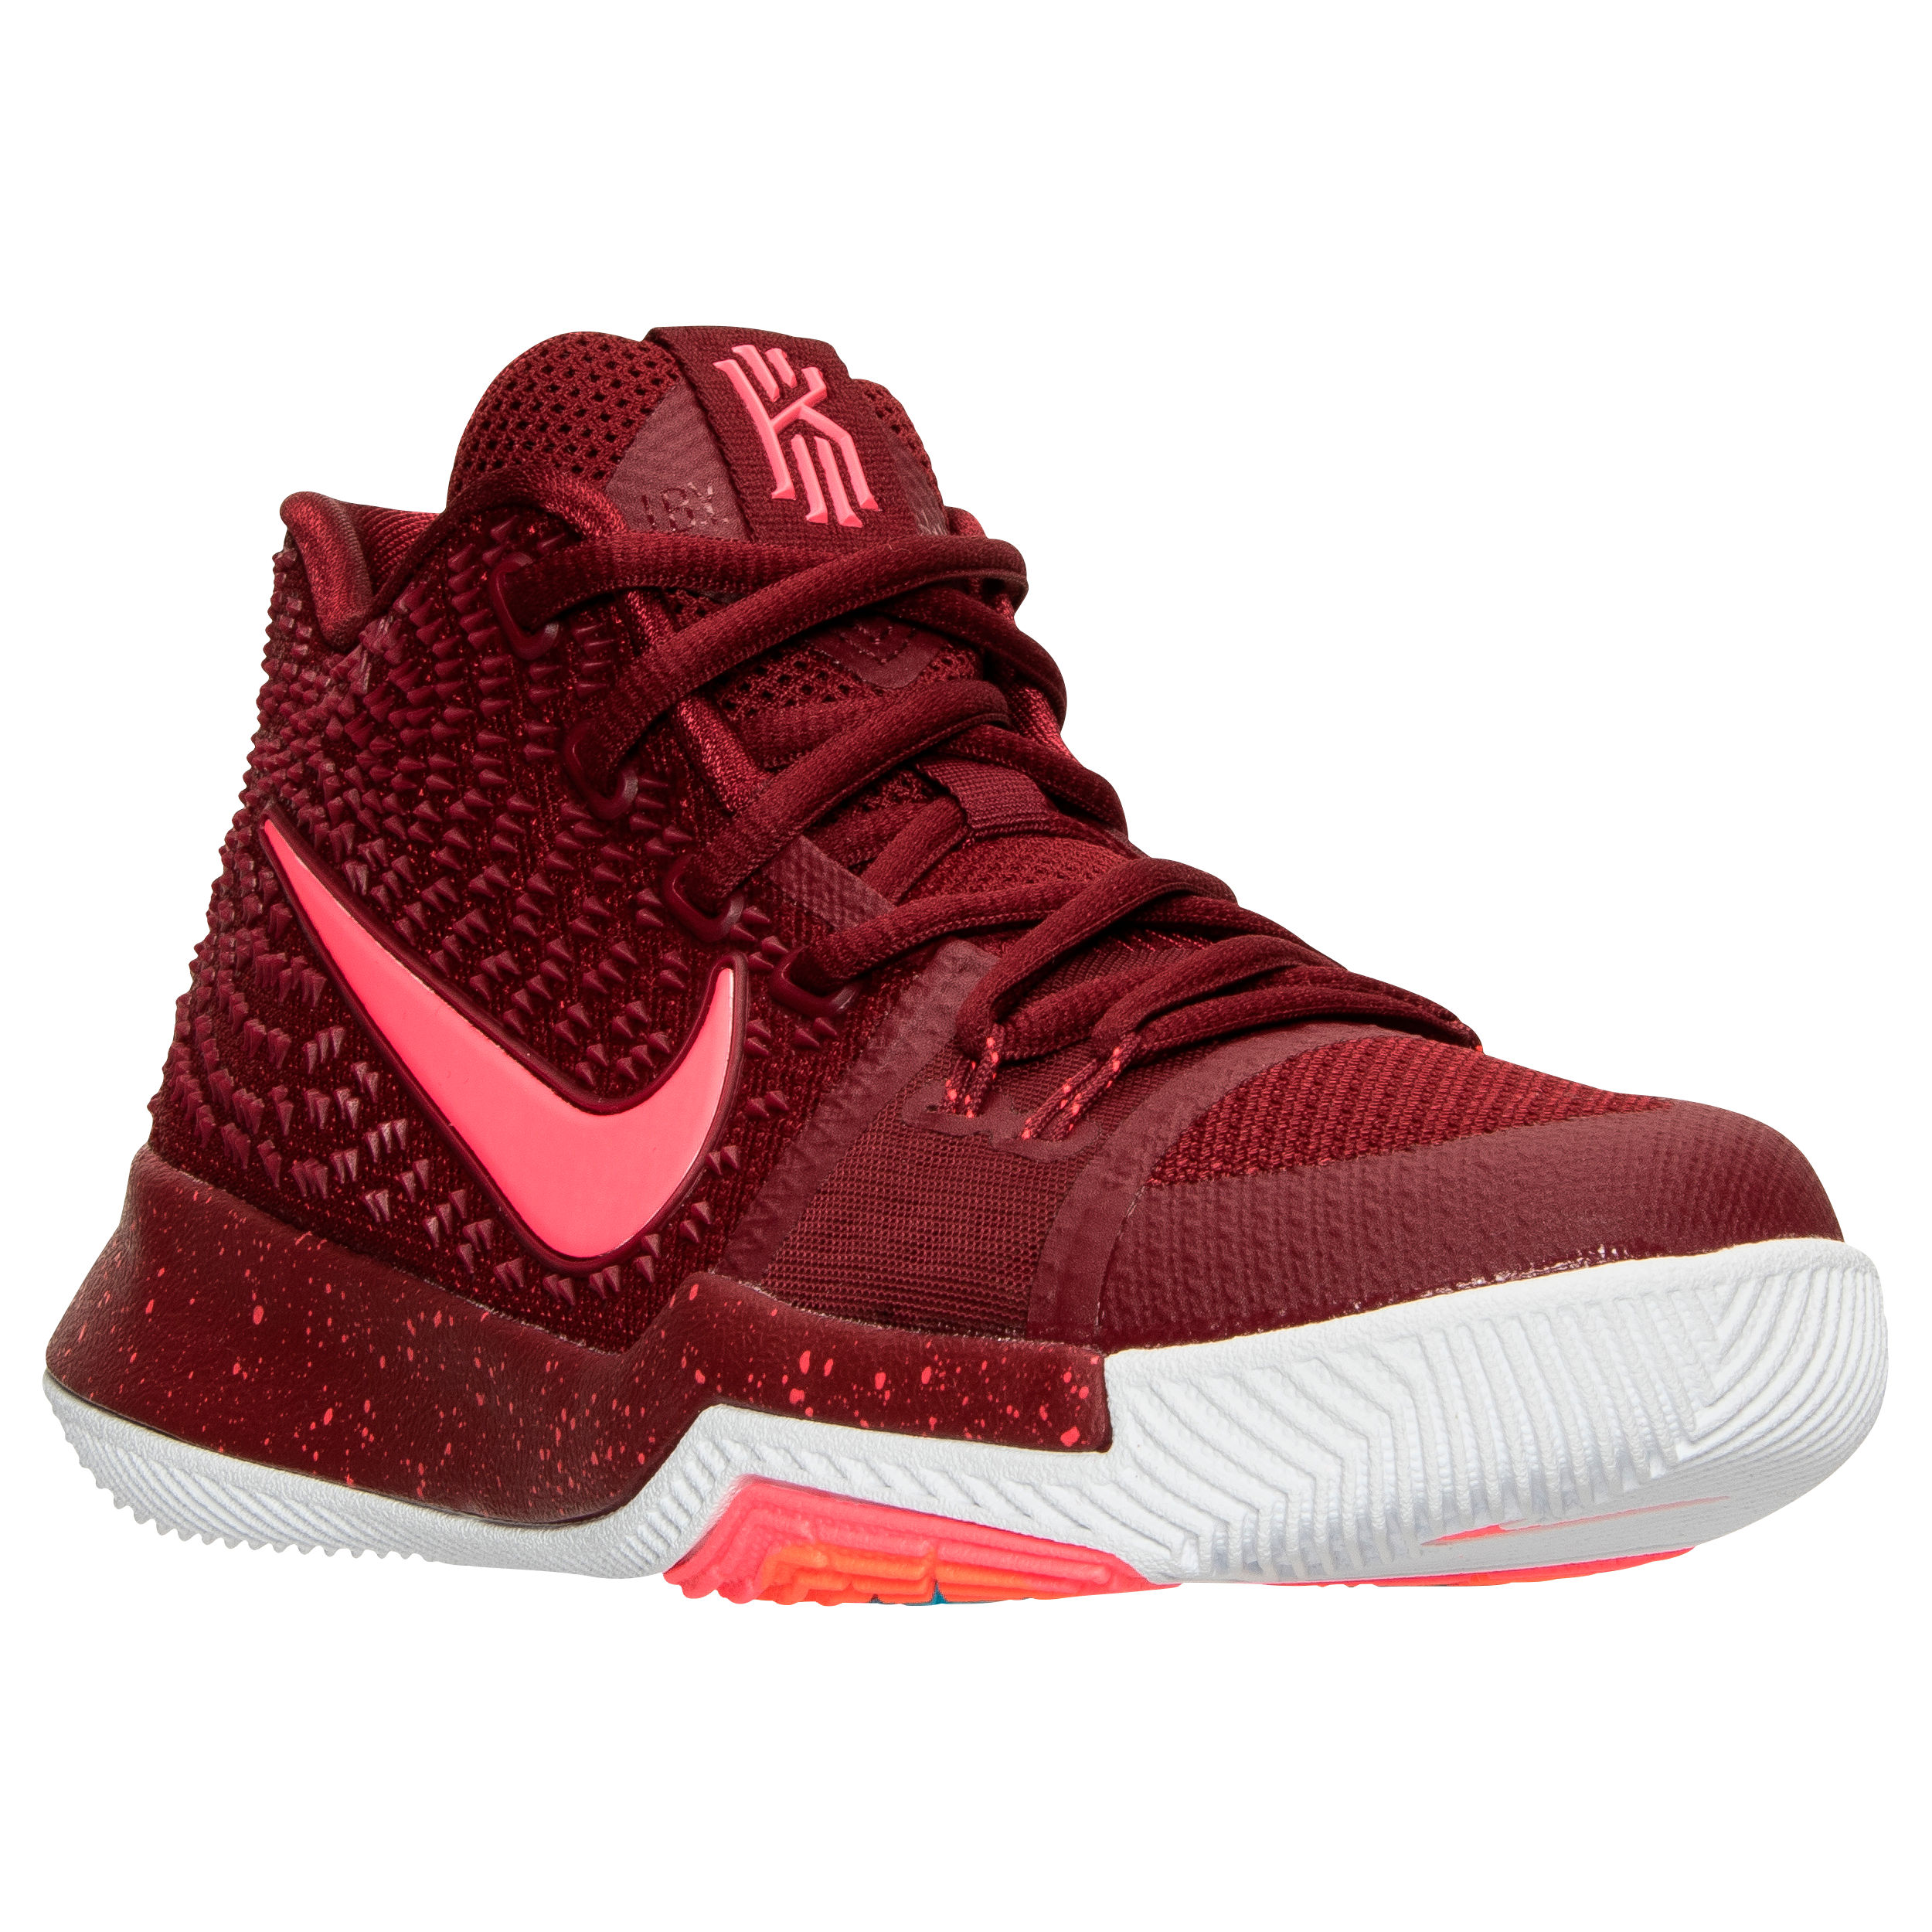 0af9063e110 A Look at the Upcoming  Team Red  Nike Kyrie 3 GS - WearTesters